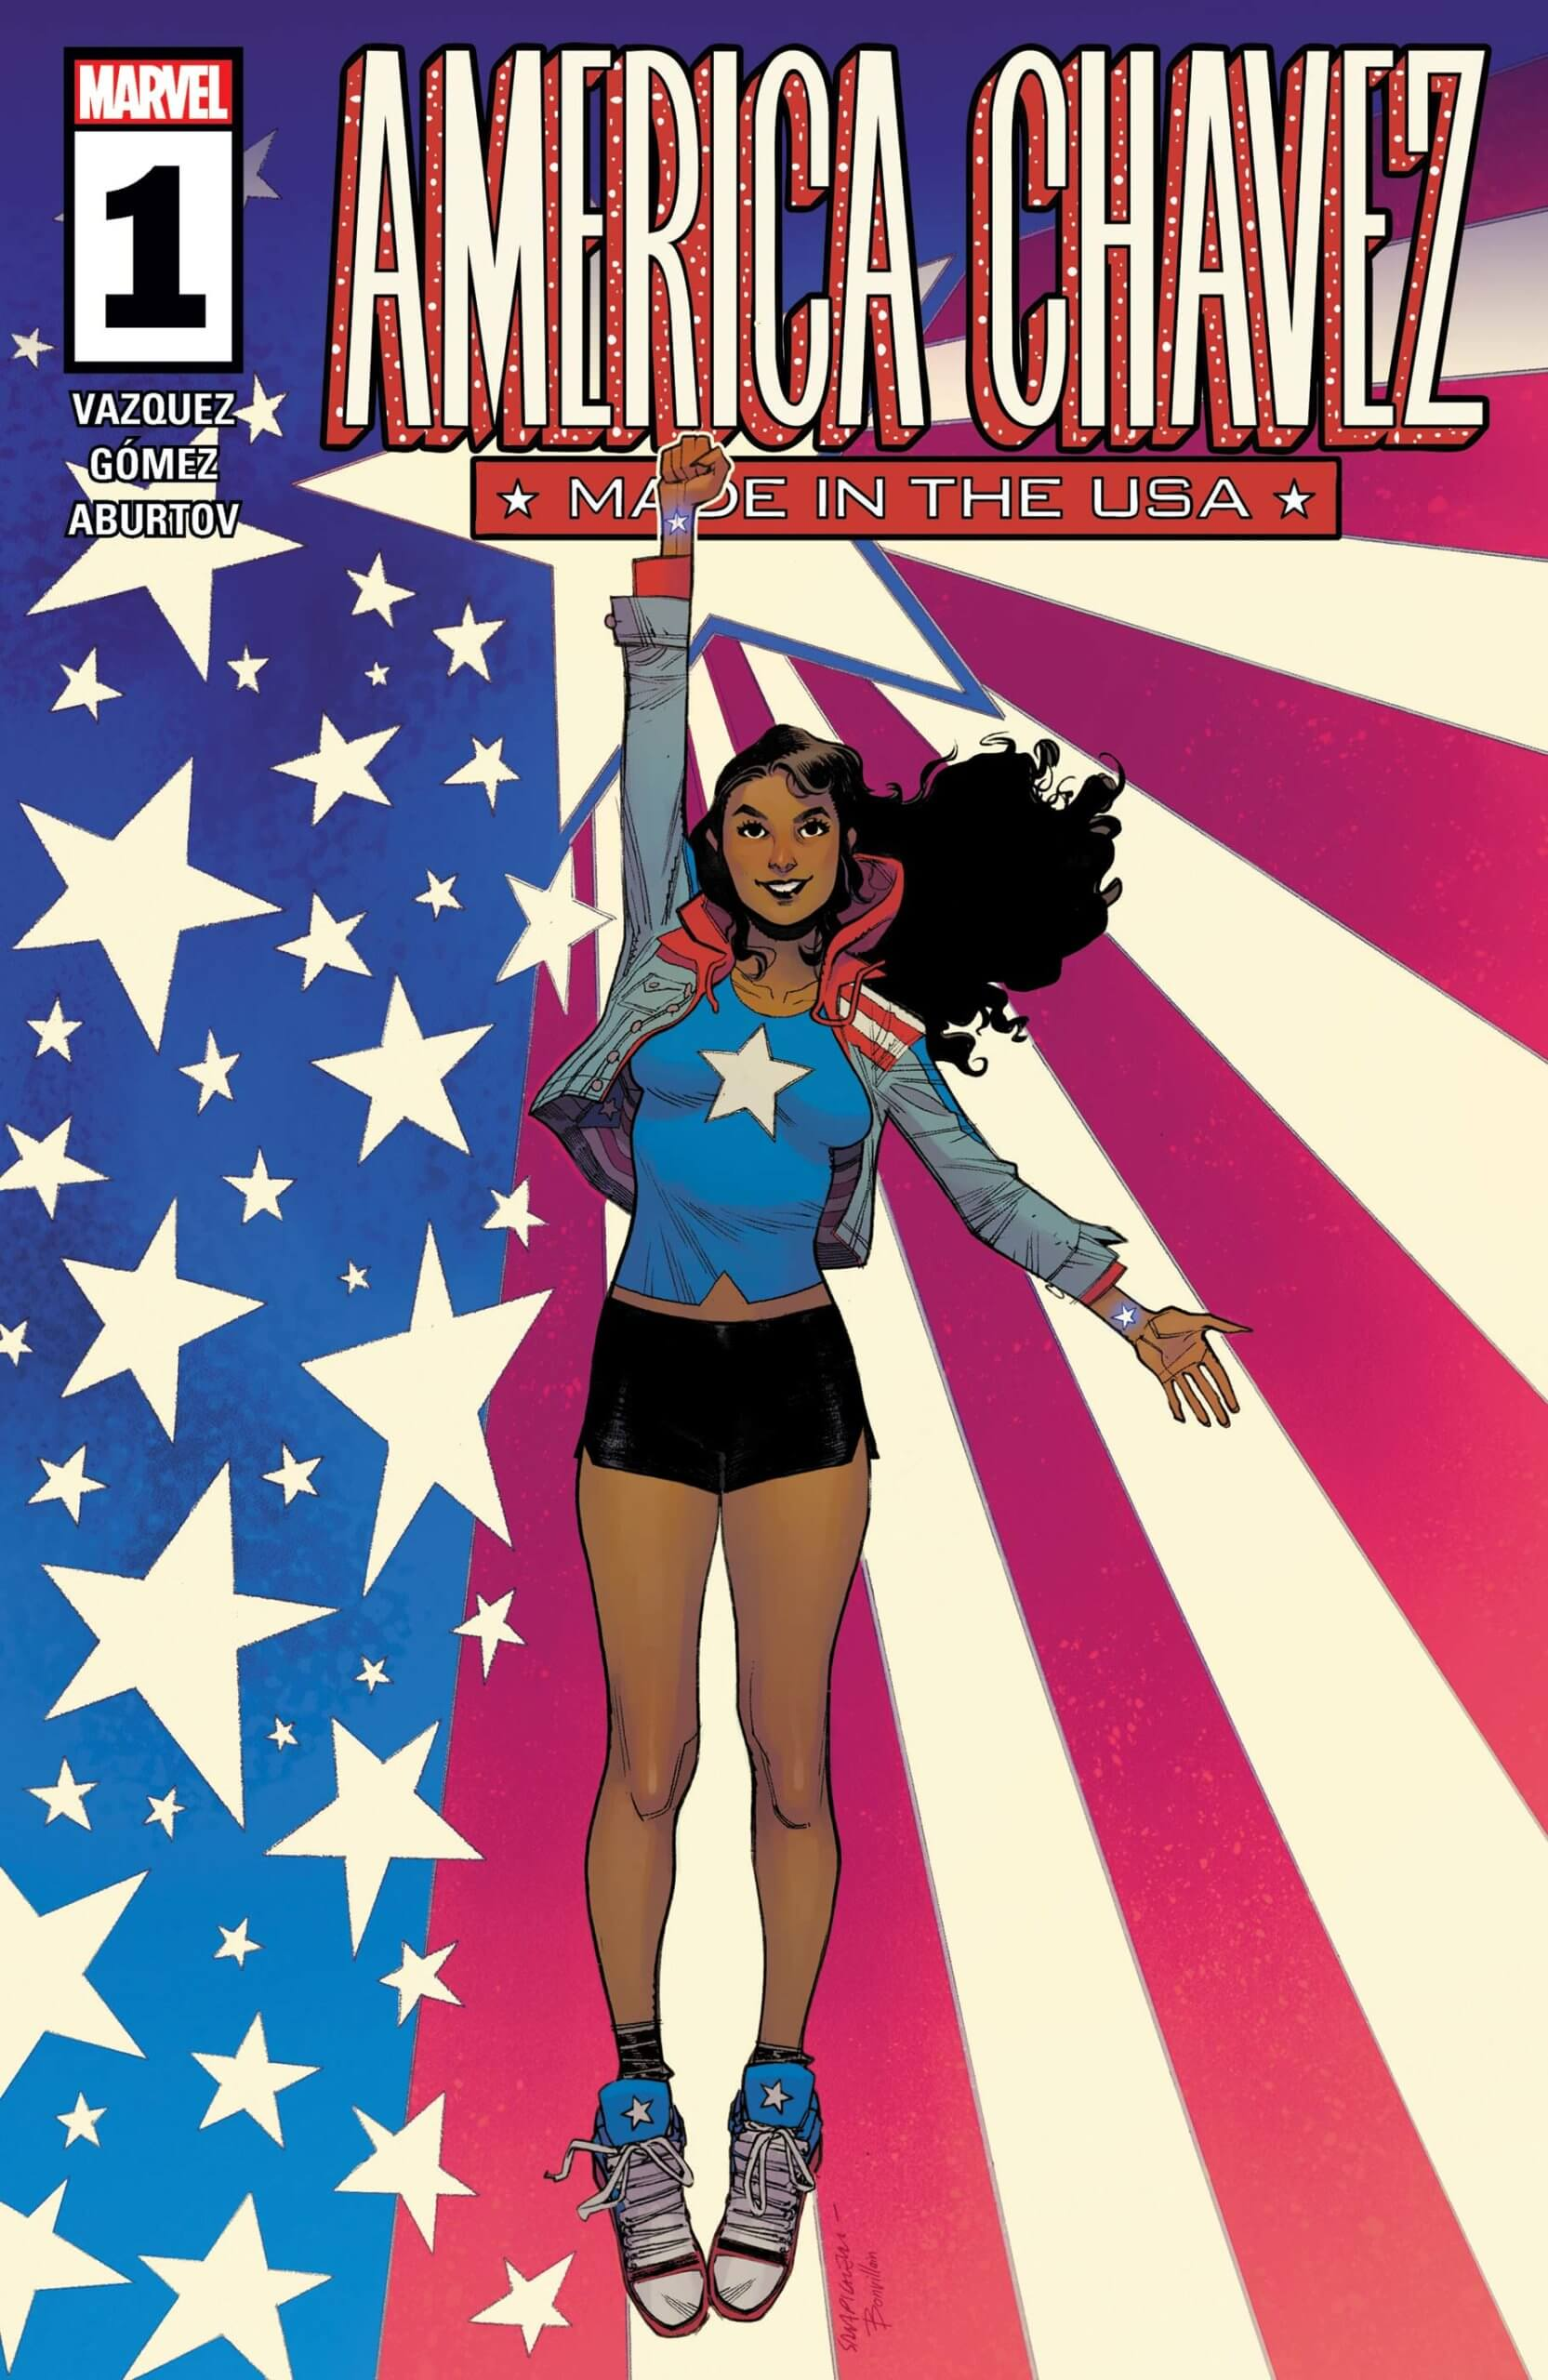 Cover for America Chavez: Made in the USA #1, art by Sara Pichelli and Tamra Bonvillain, Marvel, 2021